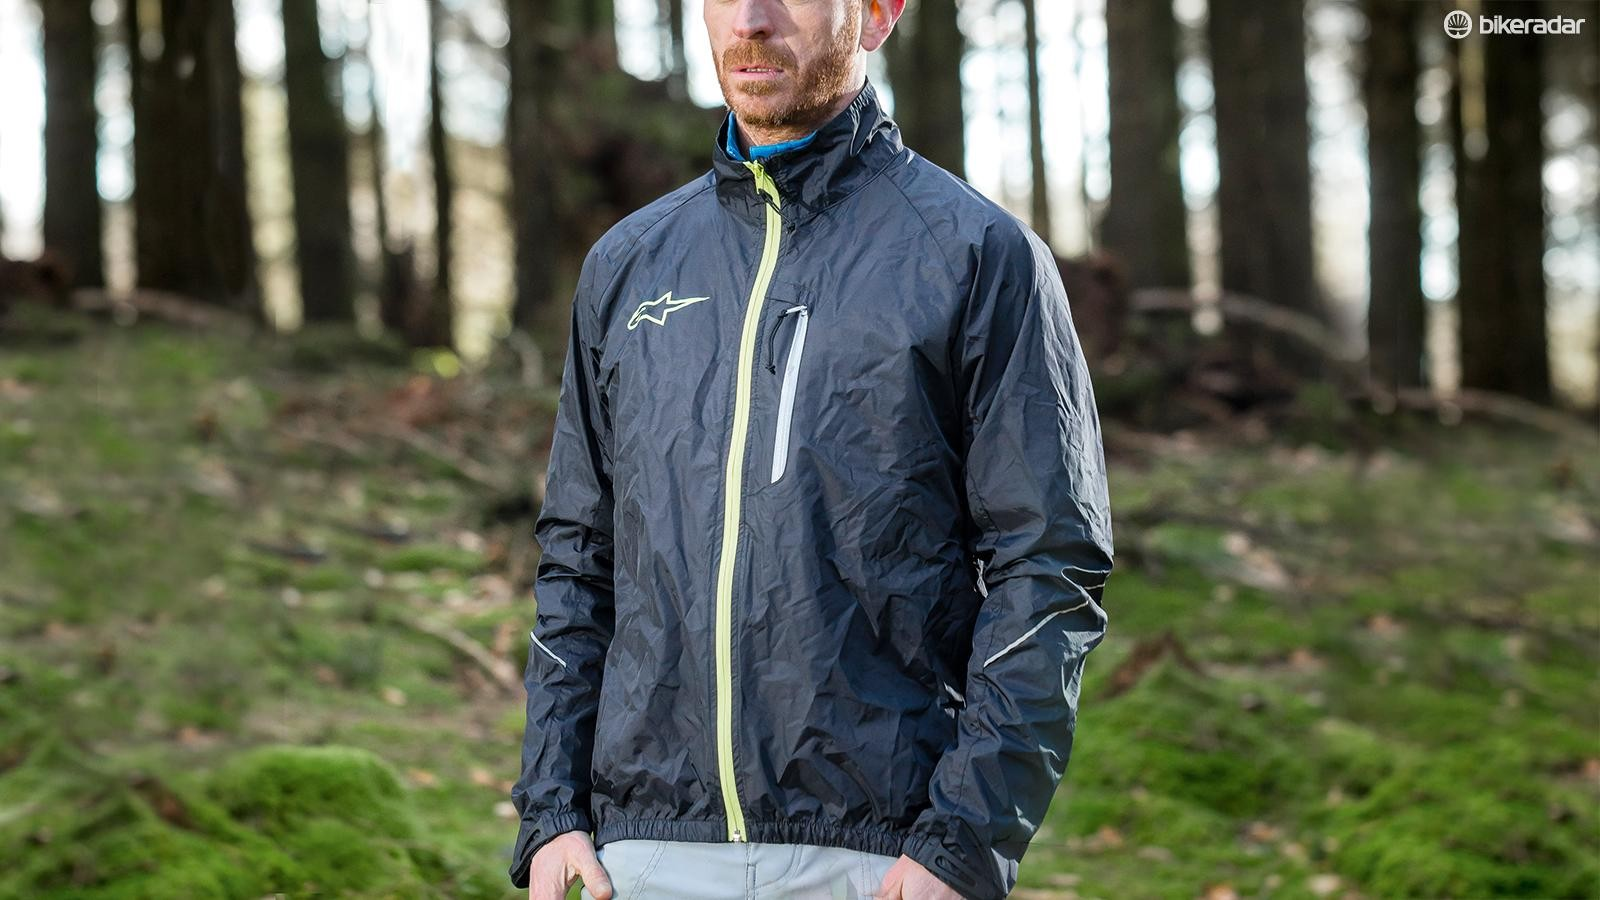 Alpinestars Descender jacket: well-priced but not really a performace item